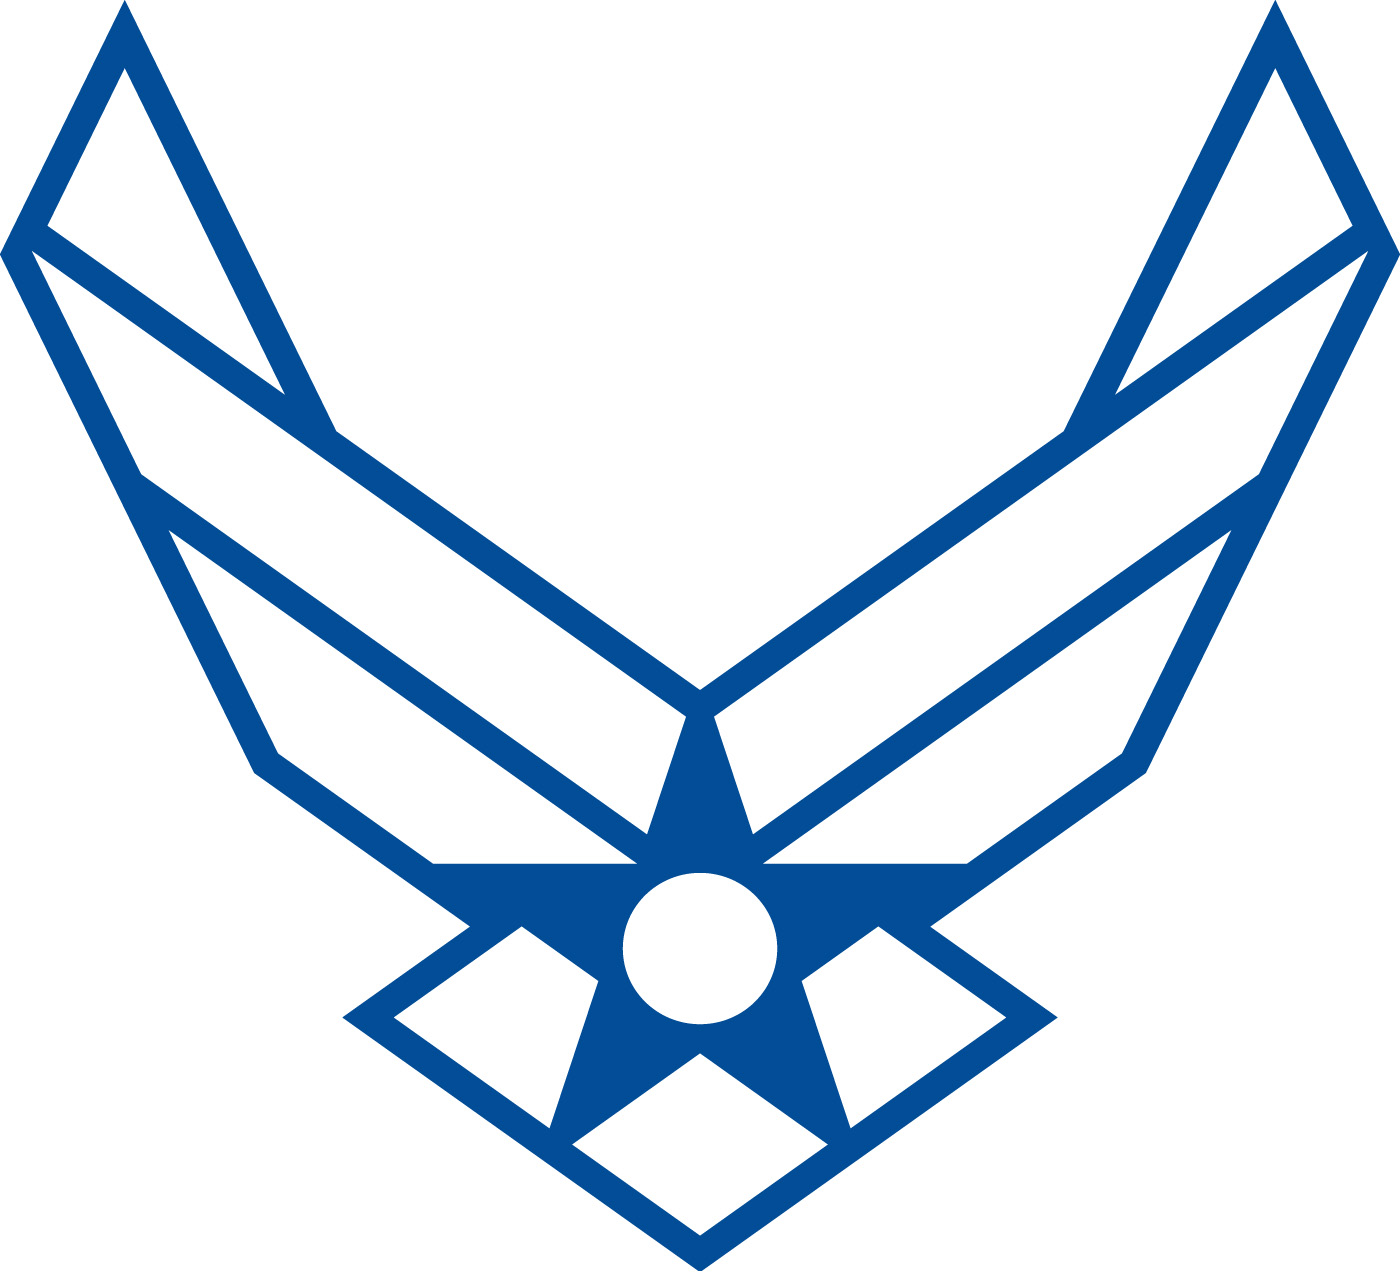 Clip Art Of Air Force Logo Clipart - Clipart Kid